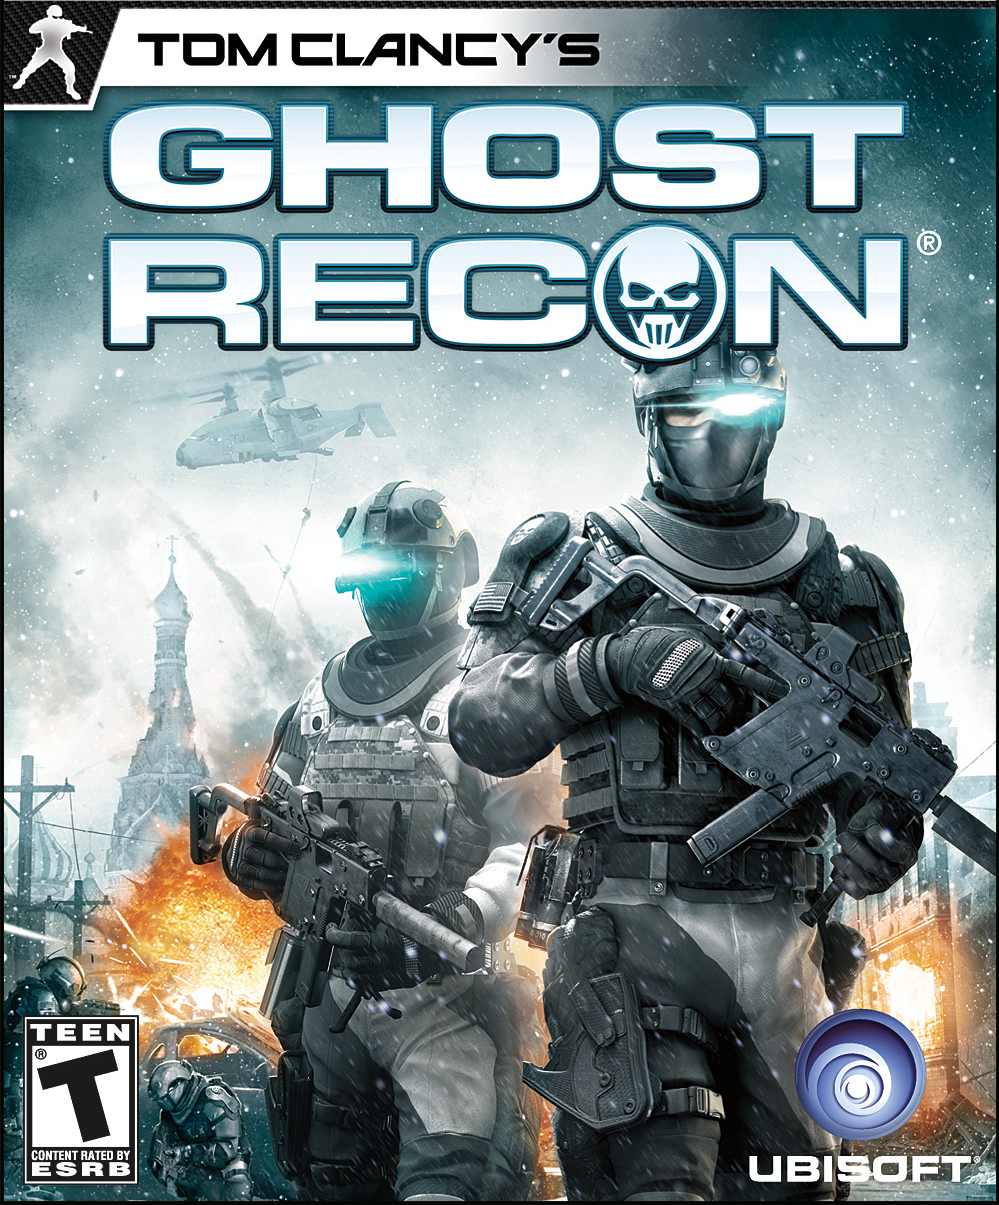 tom clancy's ghost recon wii | ghost recon wiki | fandom powered